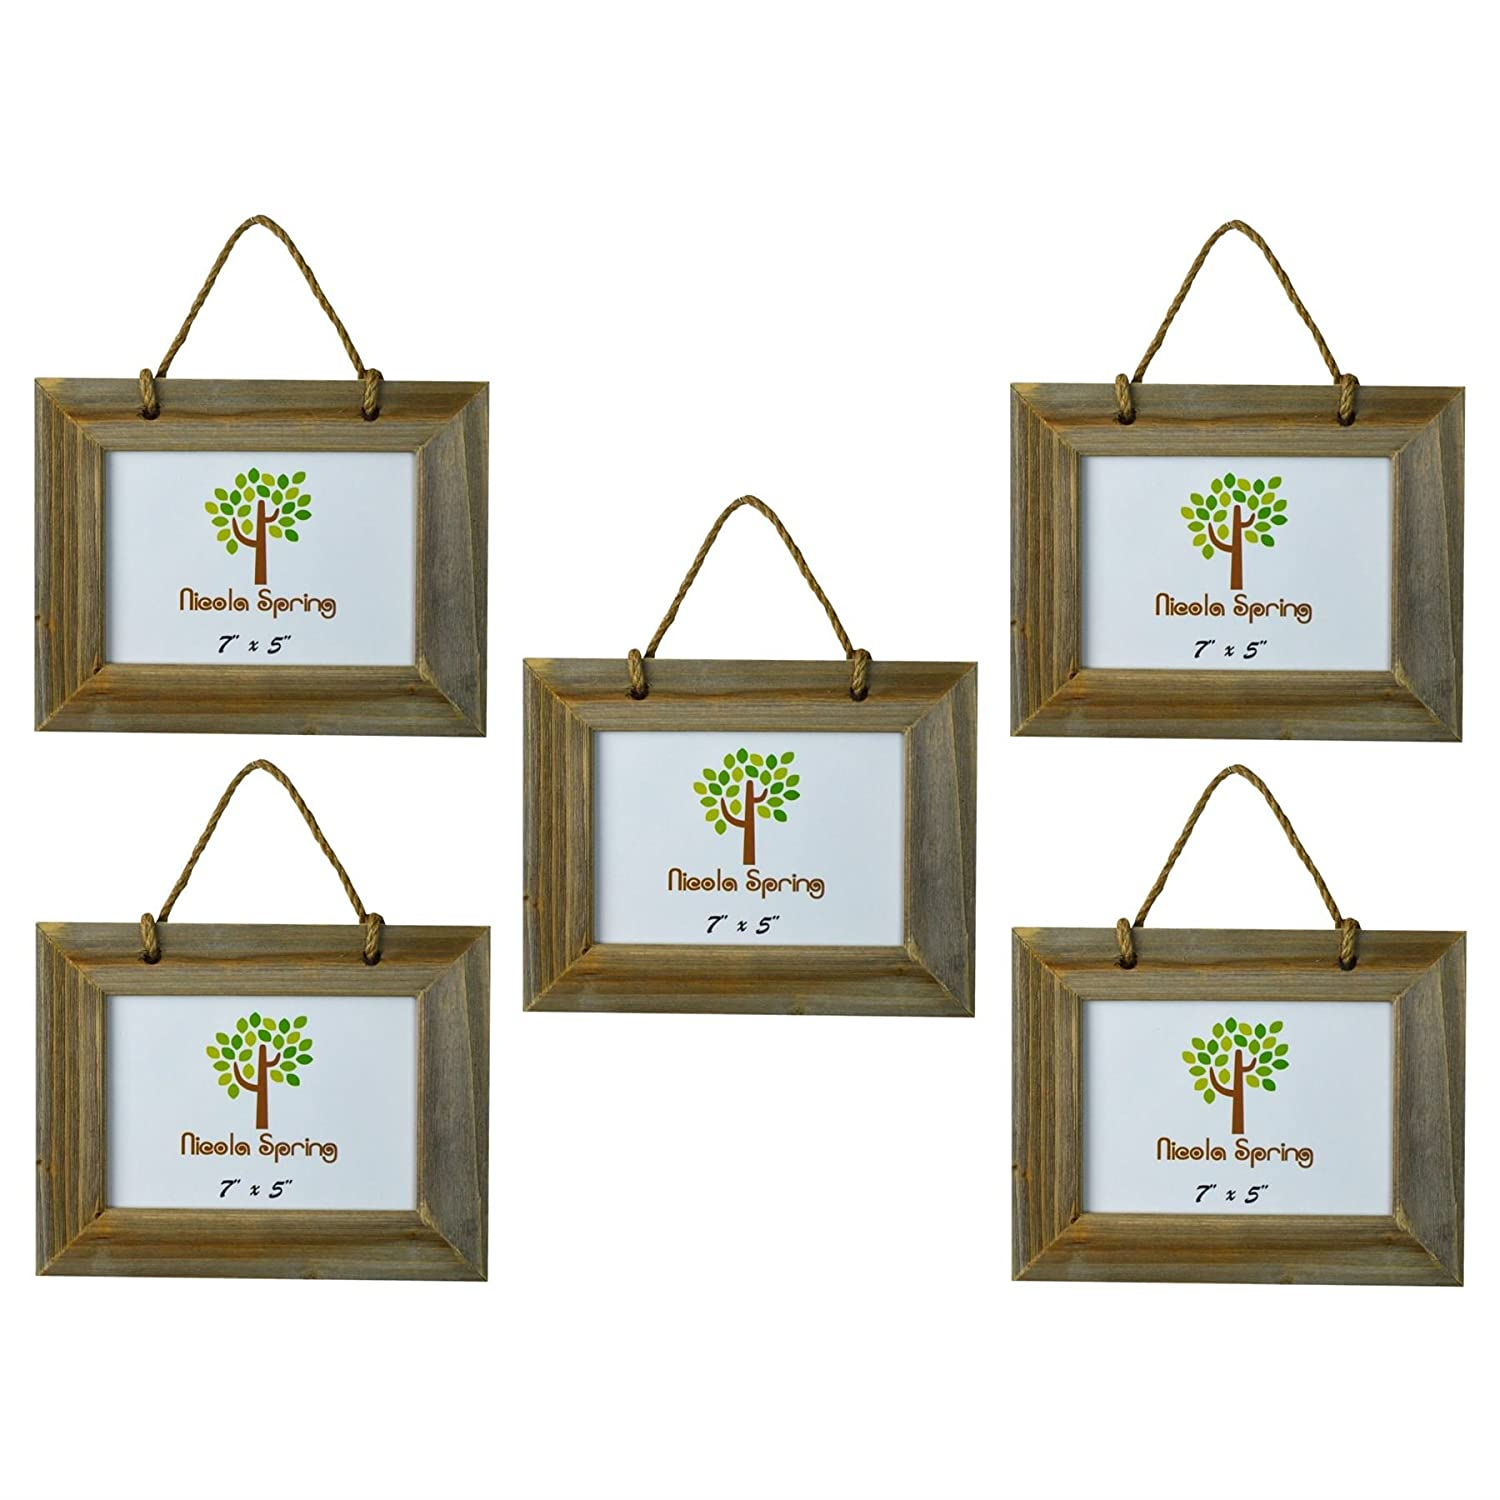 Nicola Spring Wooden Hanging Photo Picture Frame - 7 x 5 - Pack Of 5